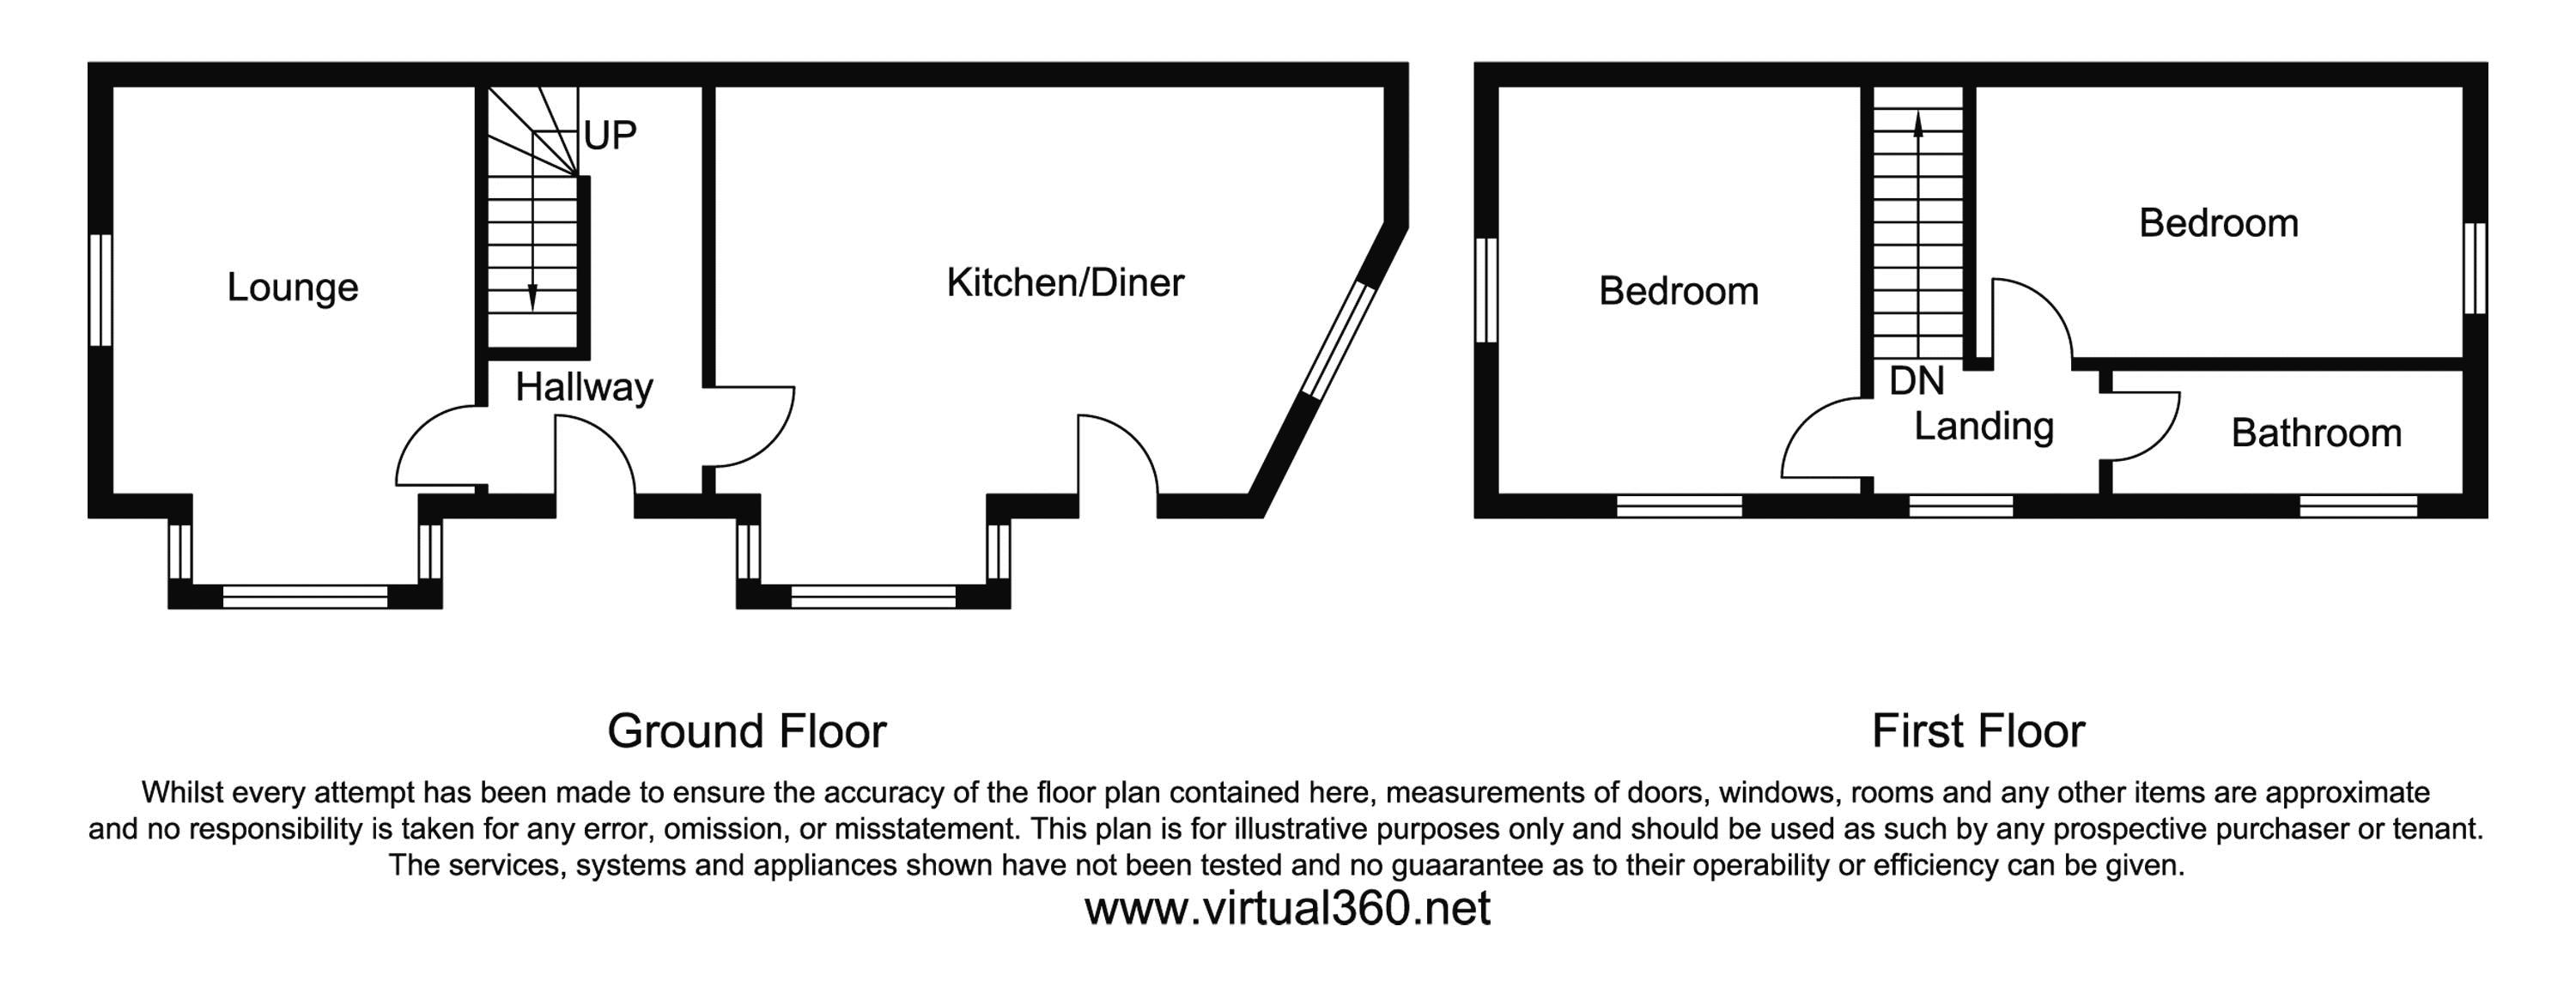 Park Road, Hunstanton floor plan